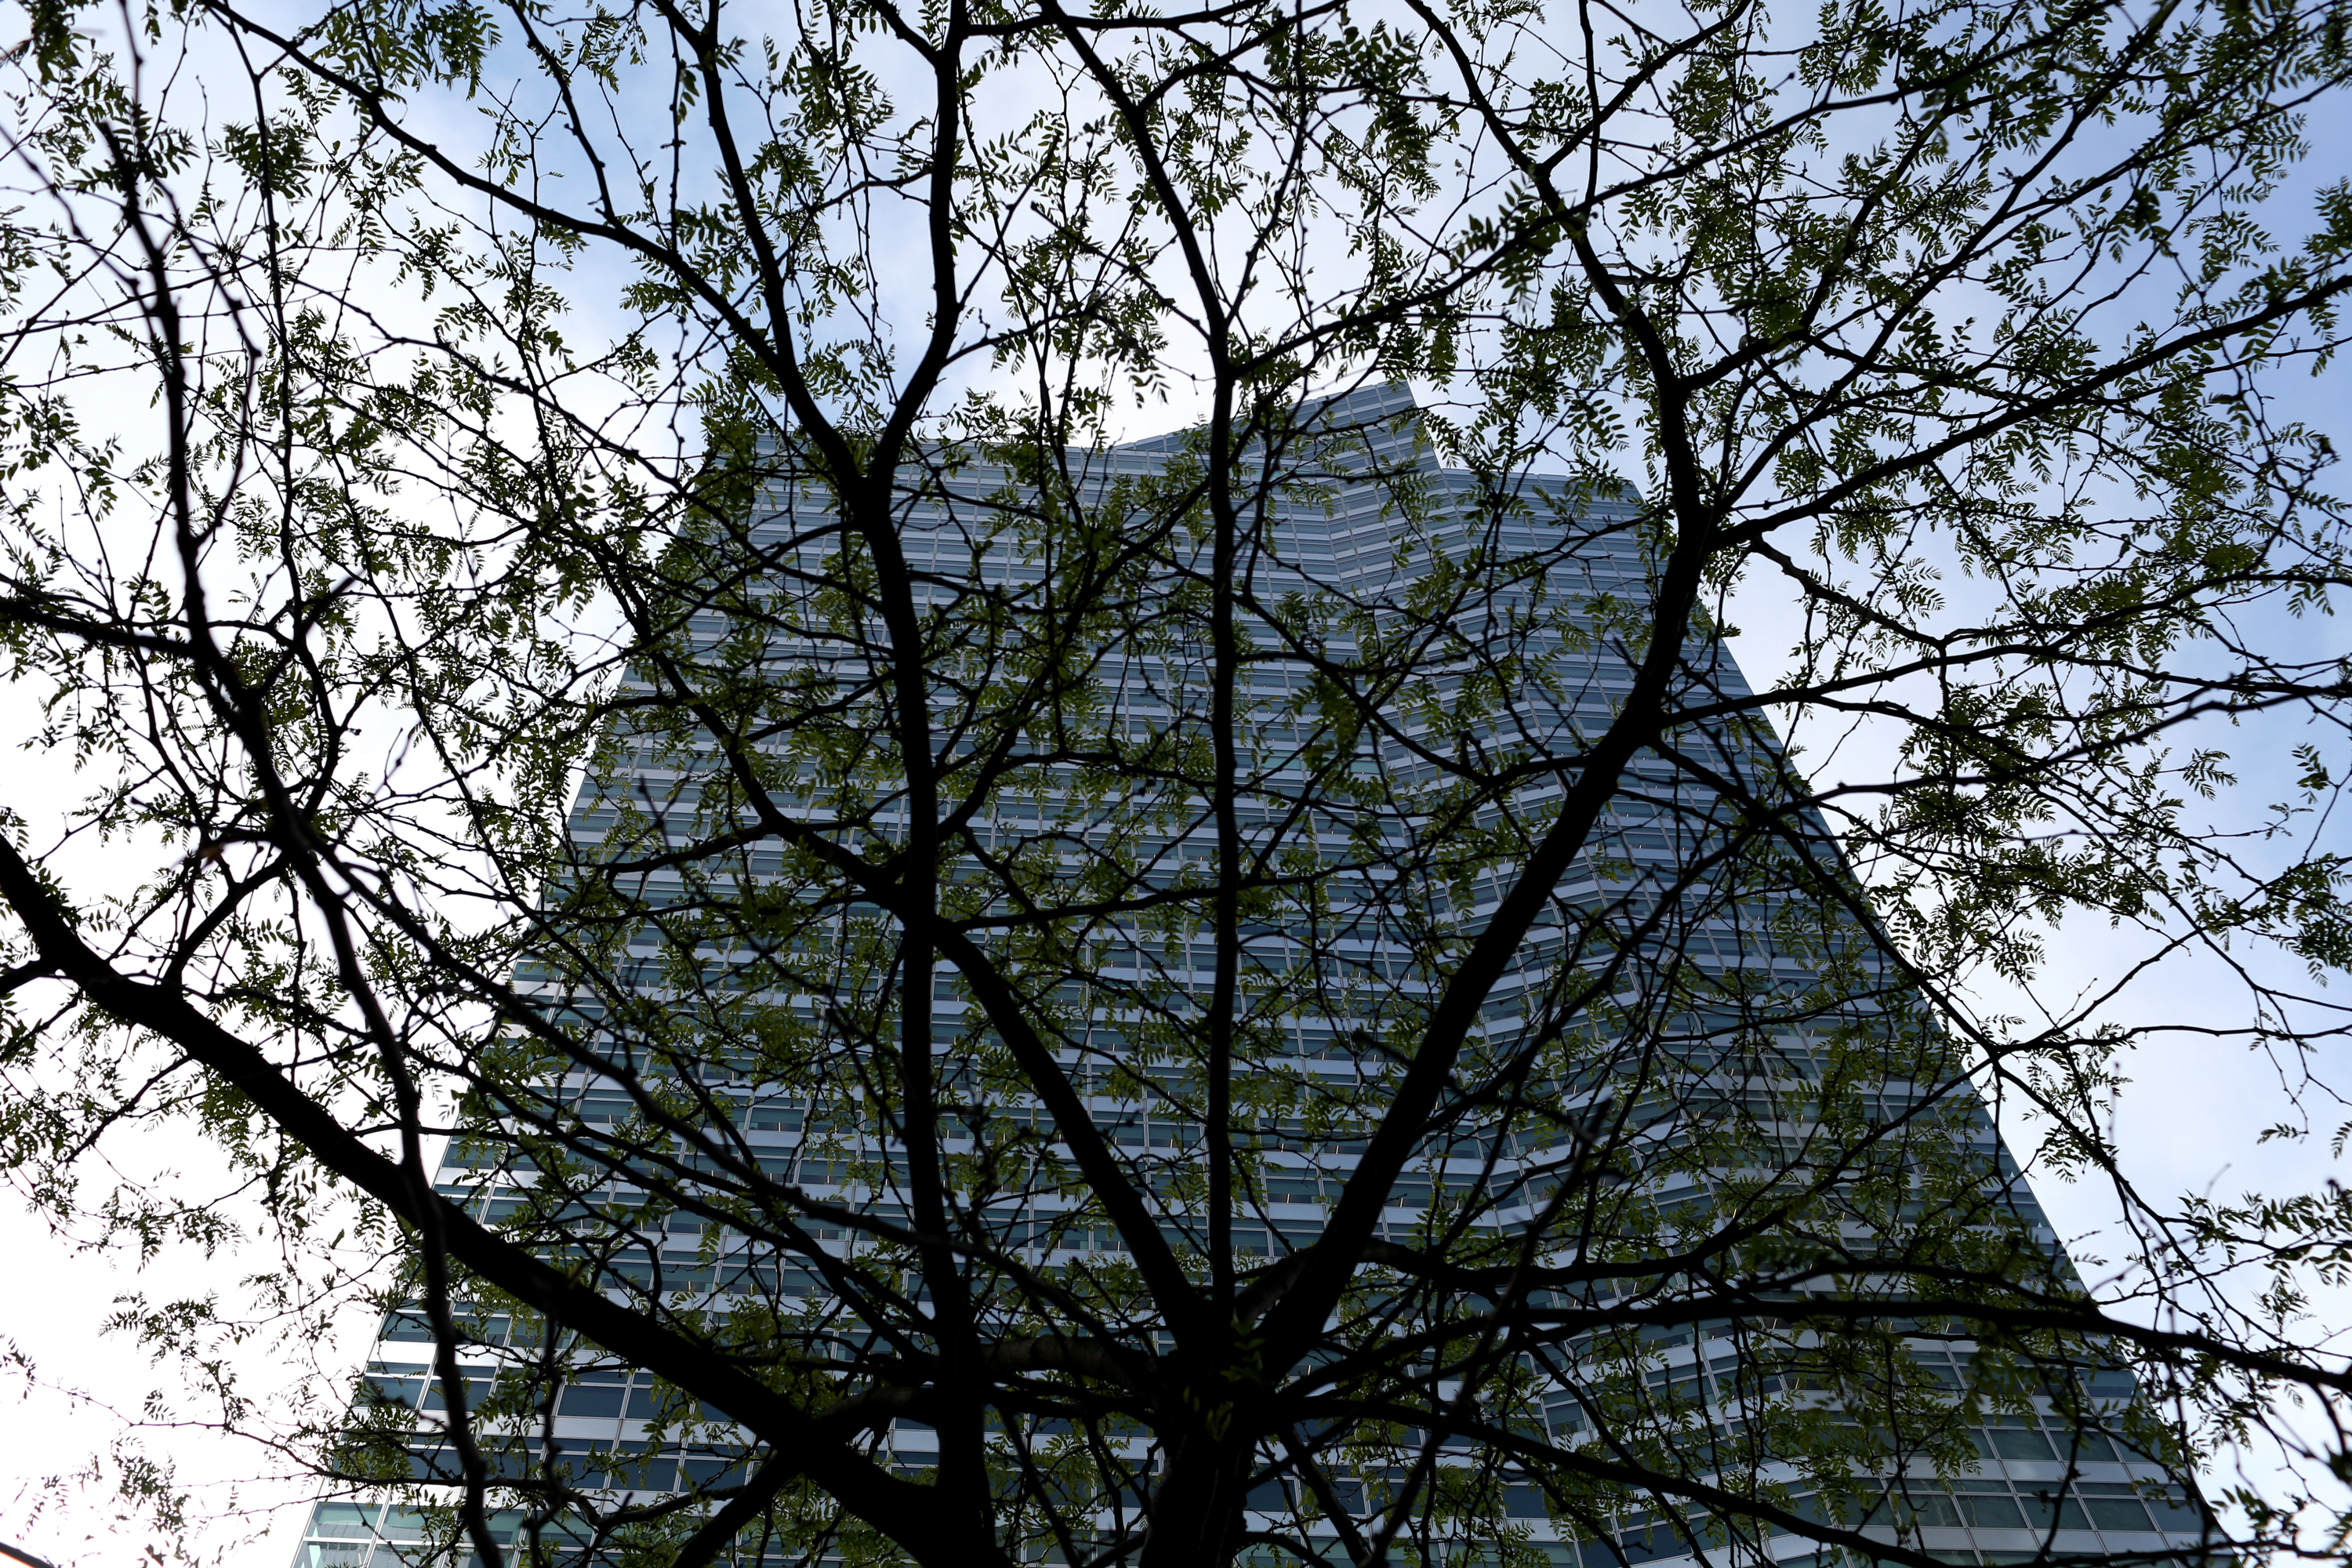 A tree grows in front of Goldman Sachs headquarters at 200 West Street, in Manhattan. May 5, 2021.